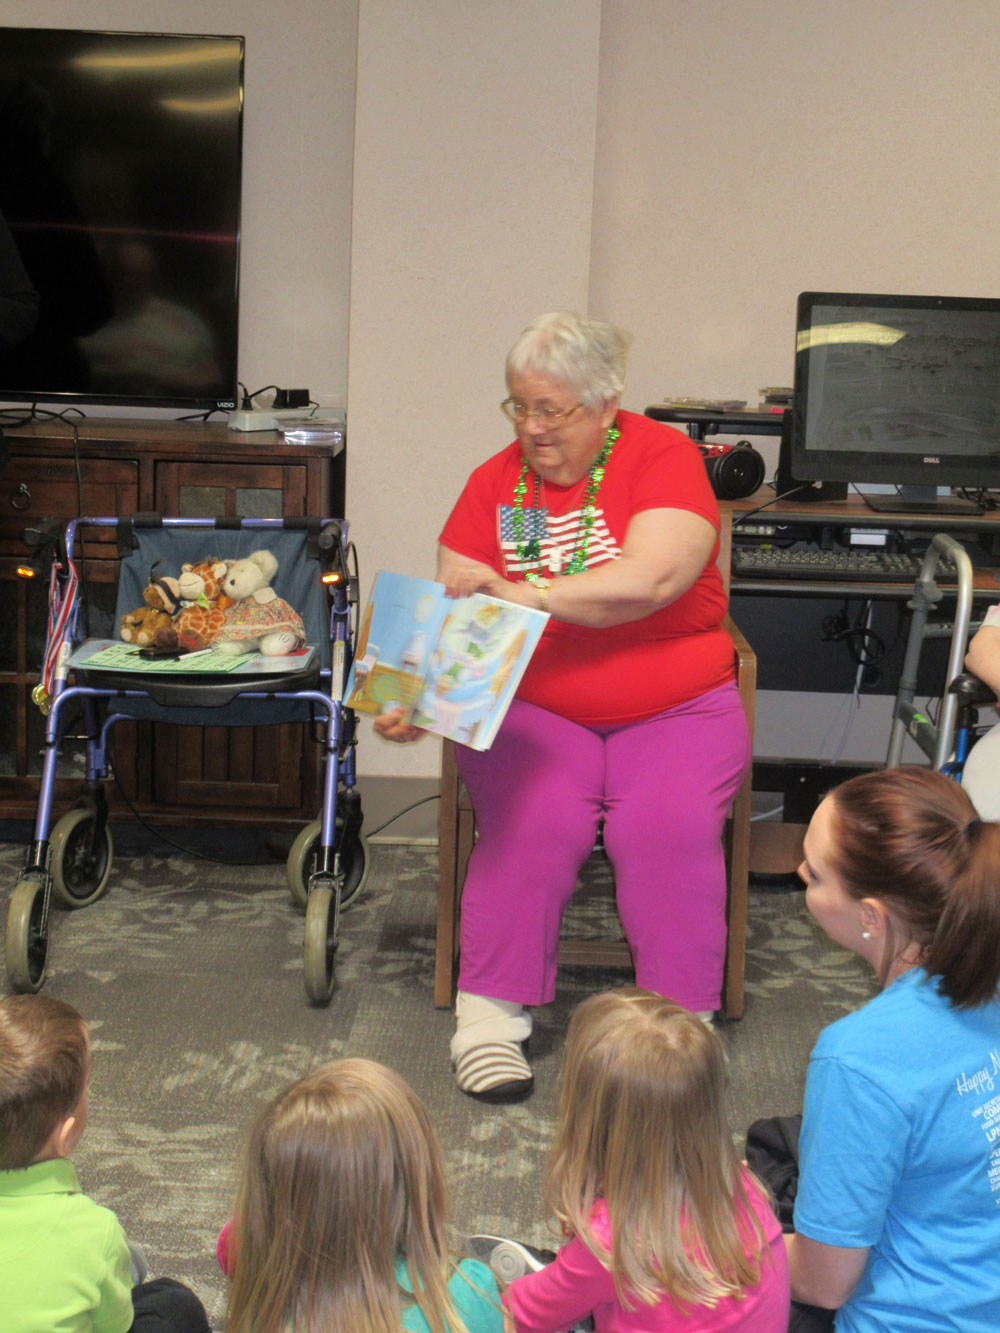 immanuel fontenelle resident reads to children